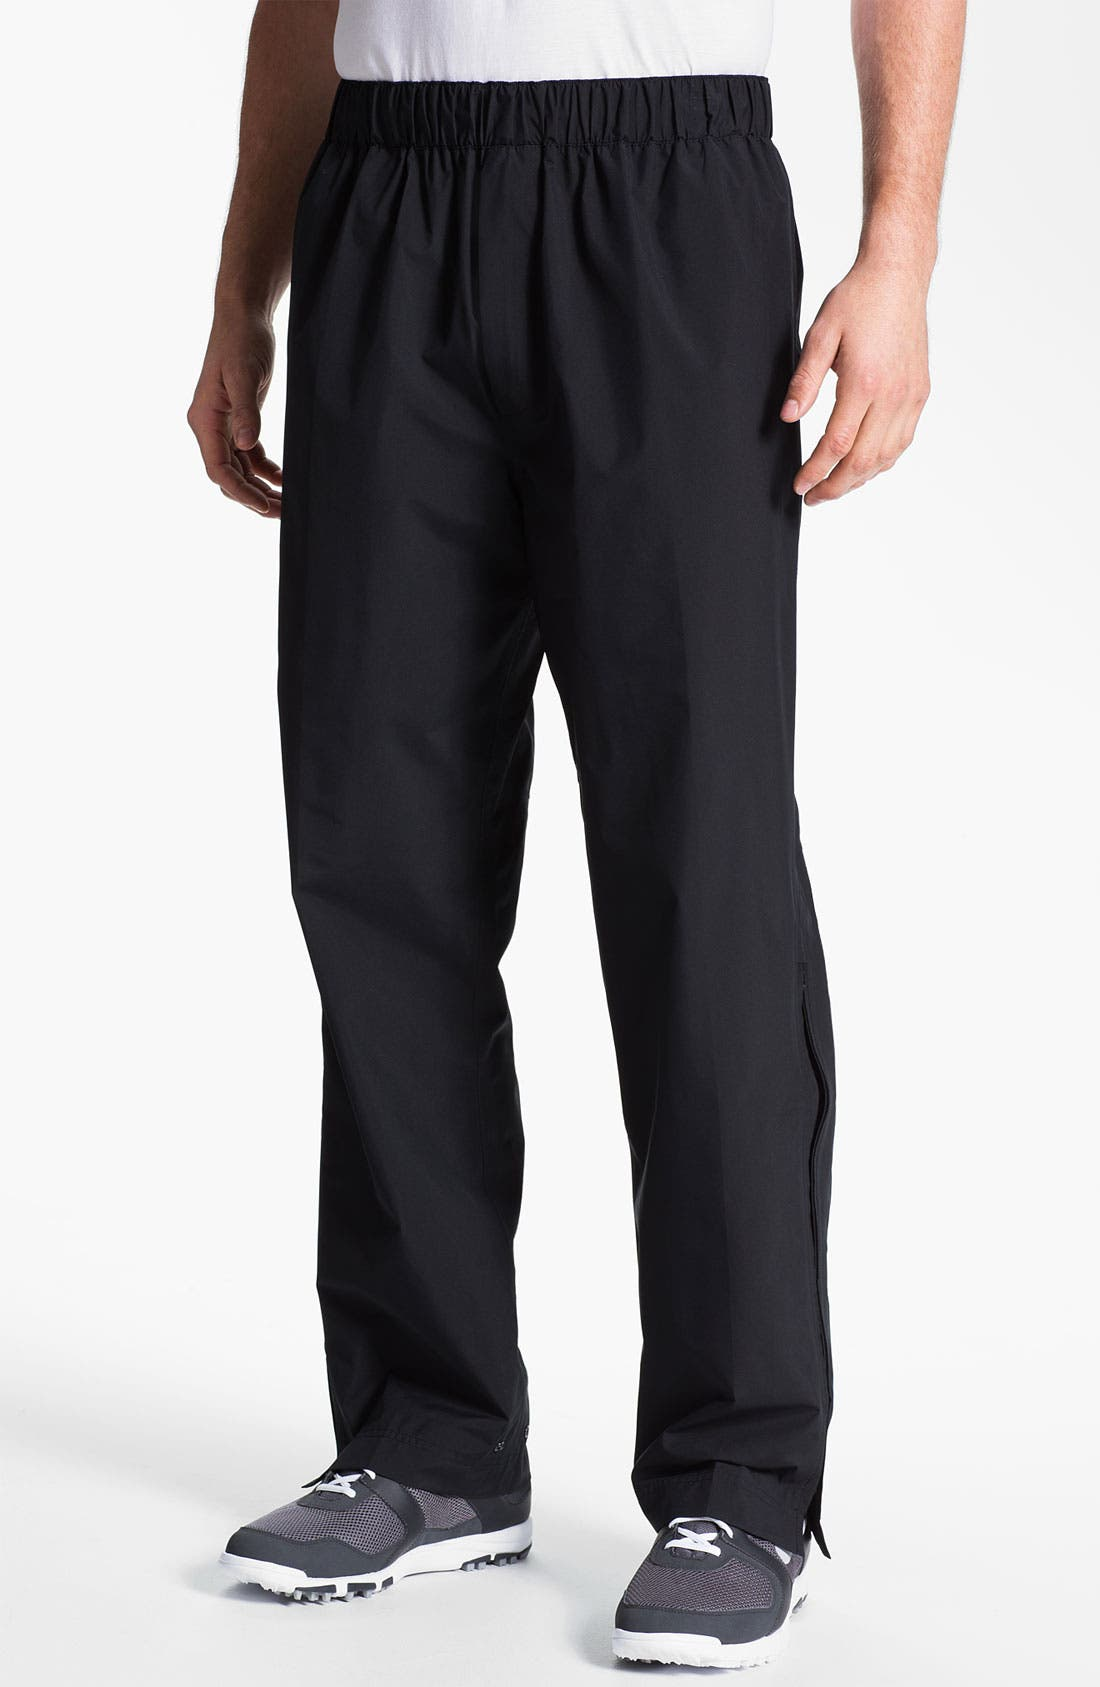 Main Image - Zero Restriction 'Qualifier' All Weather Golf Pants